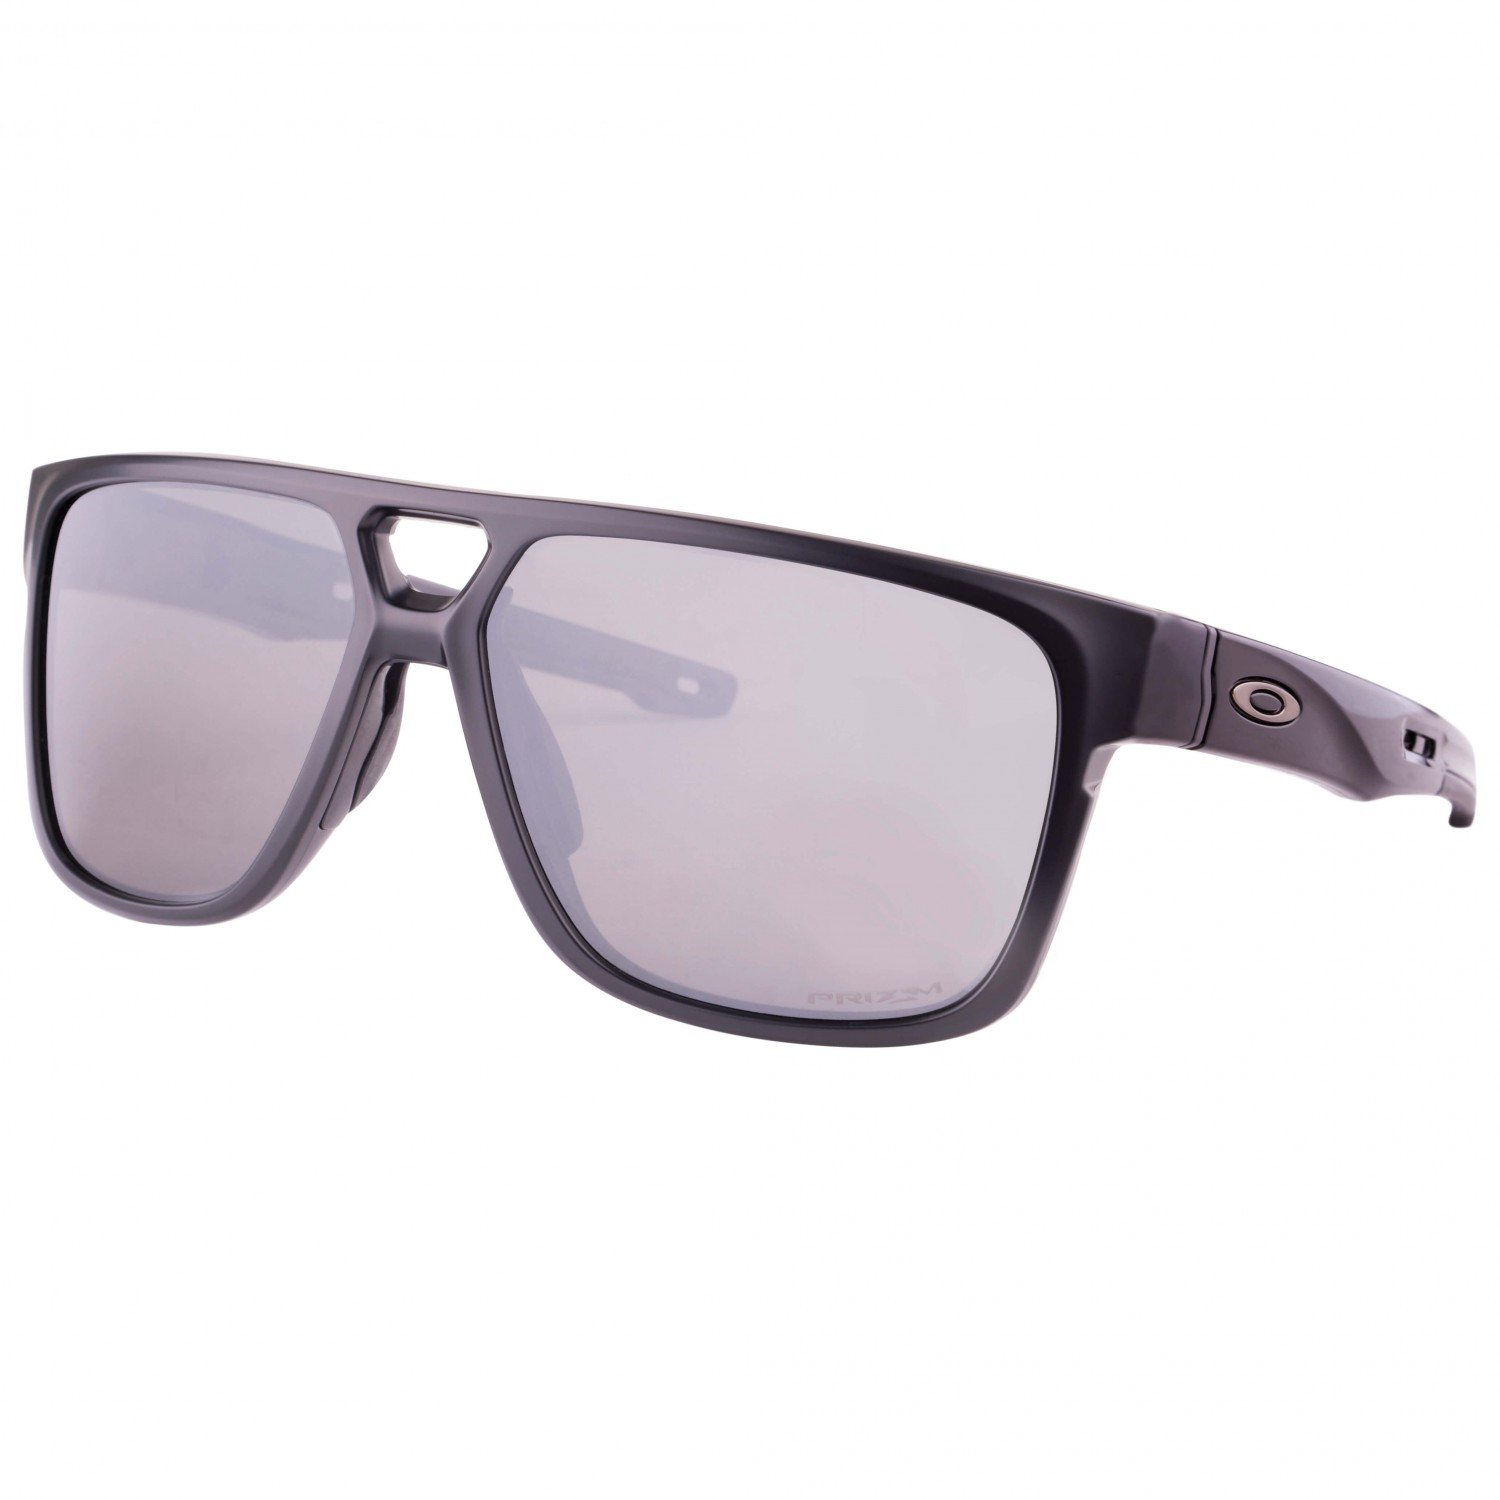 Oakley Sole Occhiali 3 Patch Cat Acquista Vlt 11 Crossrange Da rqr7xwF